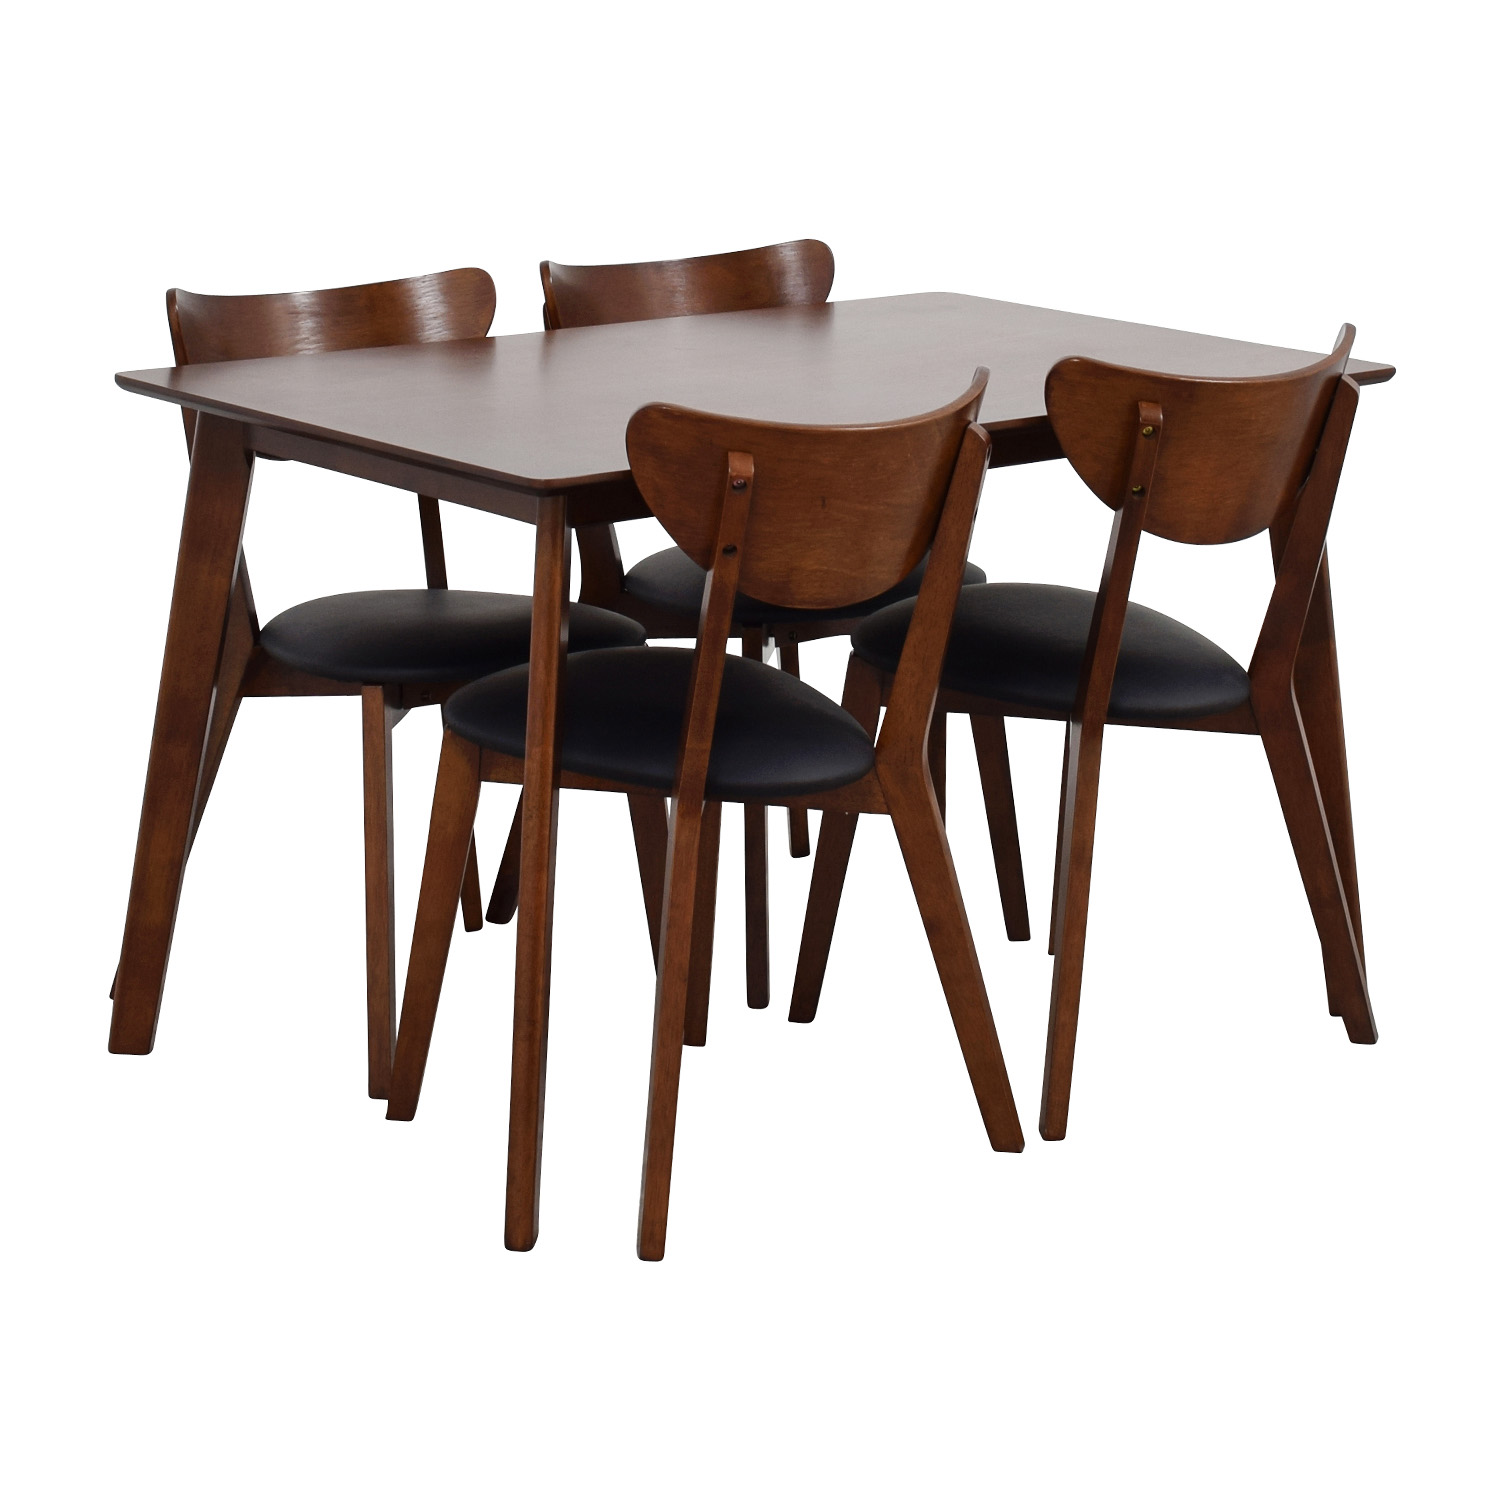 35 Off Wholesale Interiors Brown Dining Table Set With